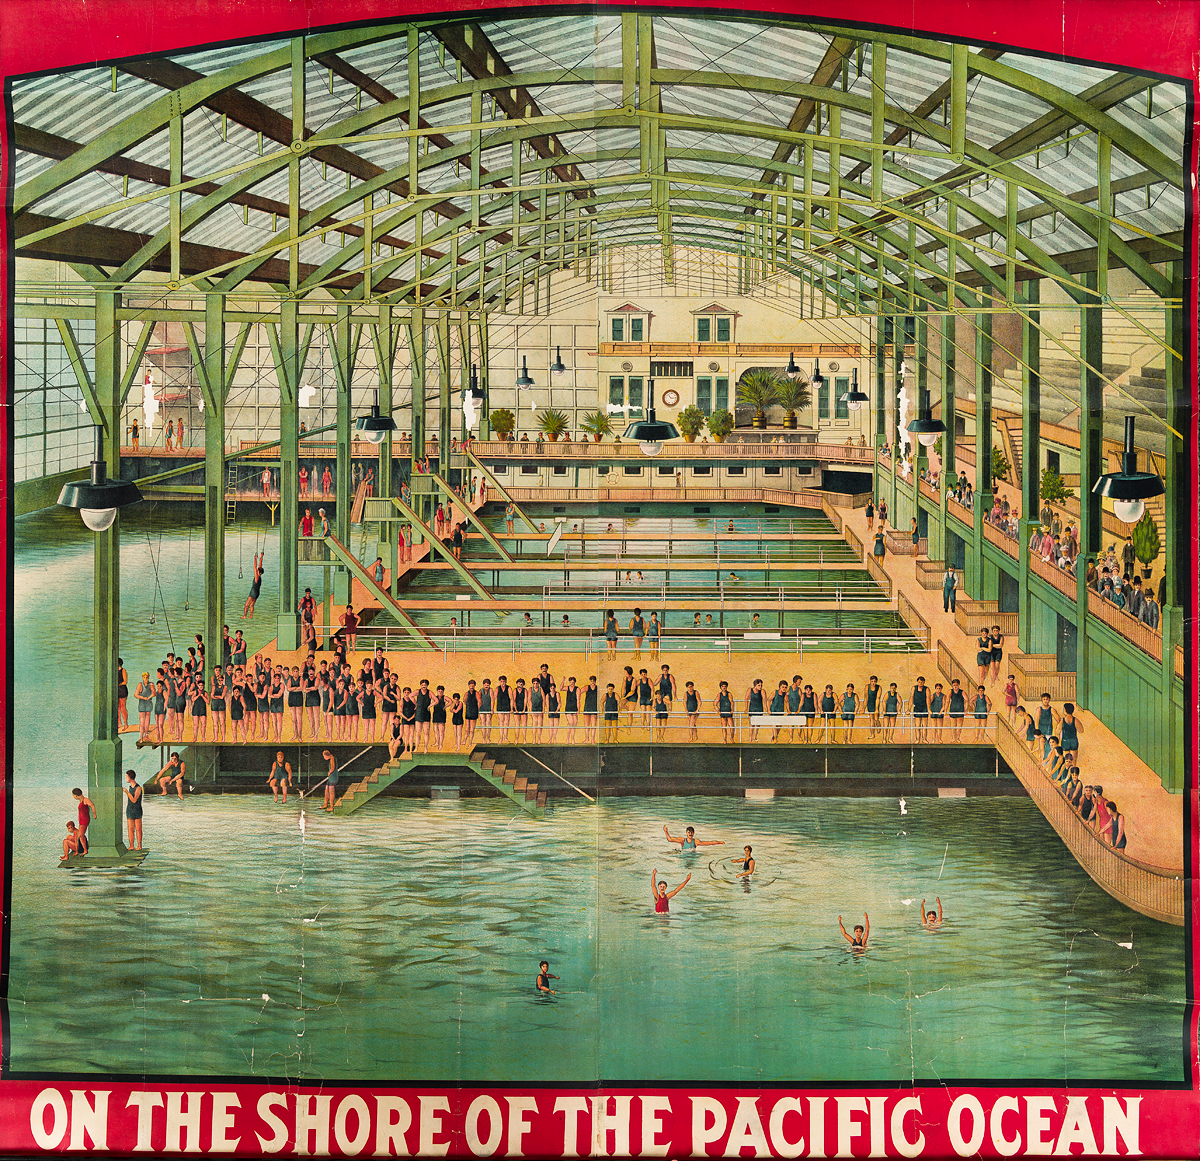 DESIGNER-UNKNOWN-[SUTRO-BATHS]--ON-THE-SHORE-OF-THE-PACIFIC-